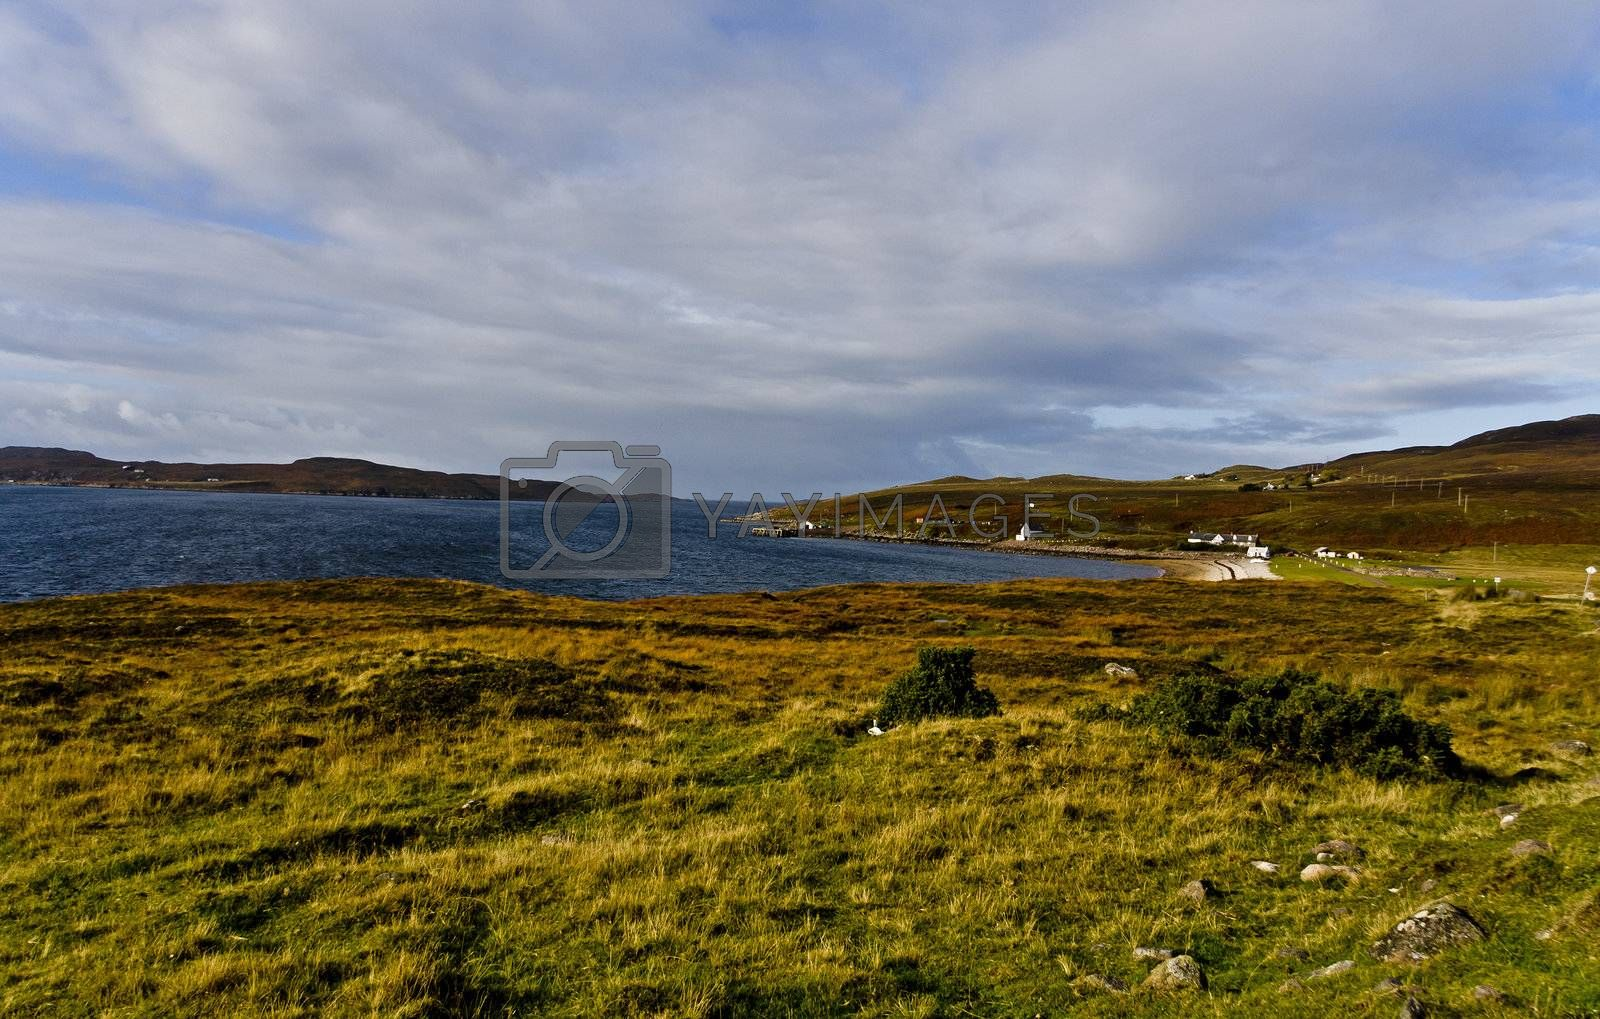 rural scottish scene at the coast with wetland and cloudy sky